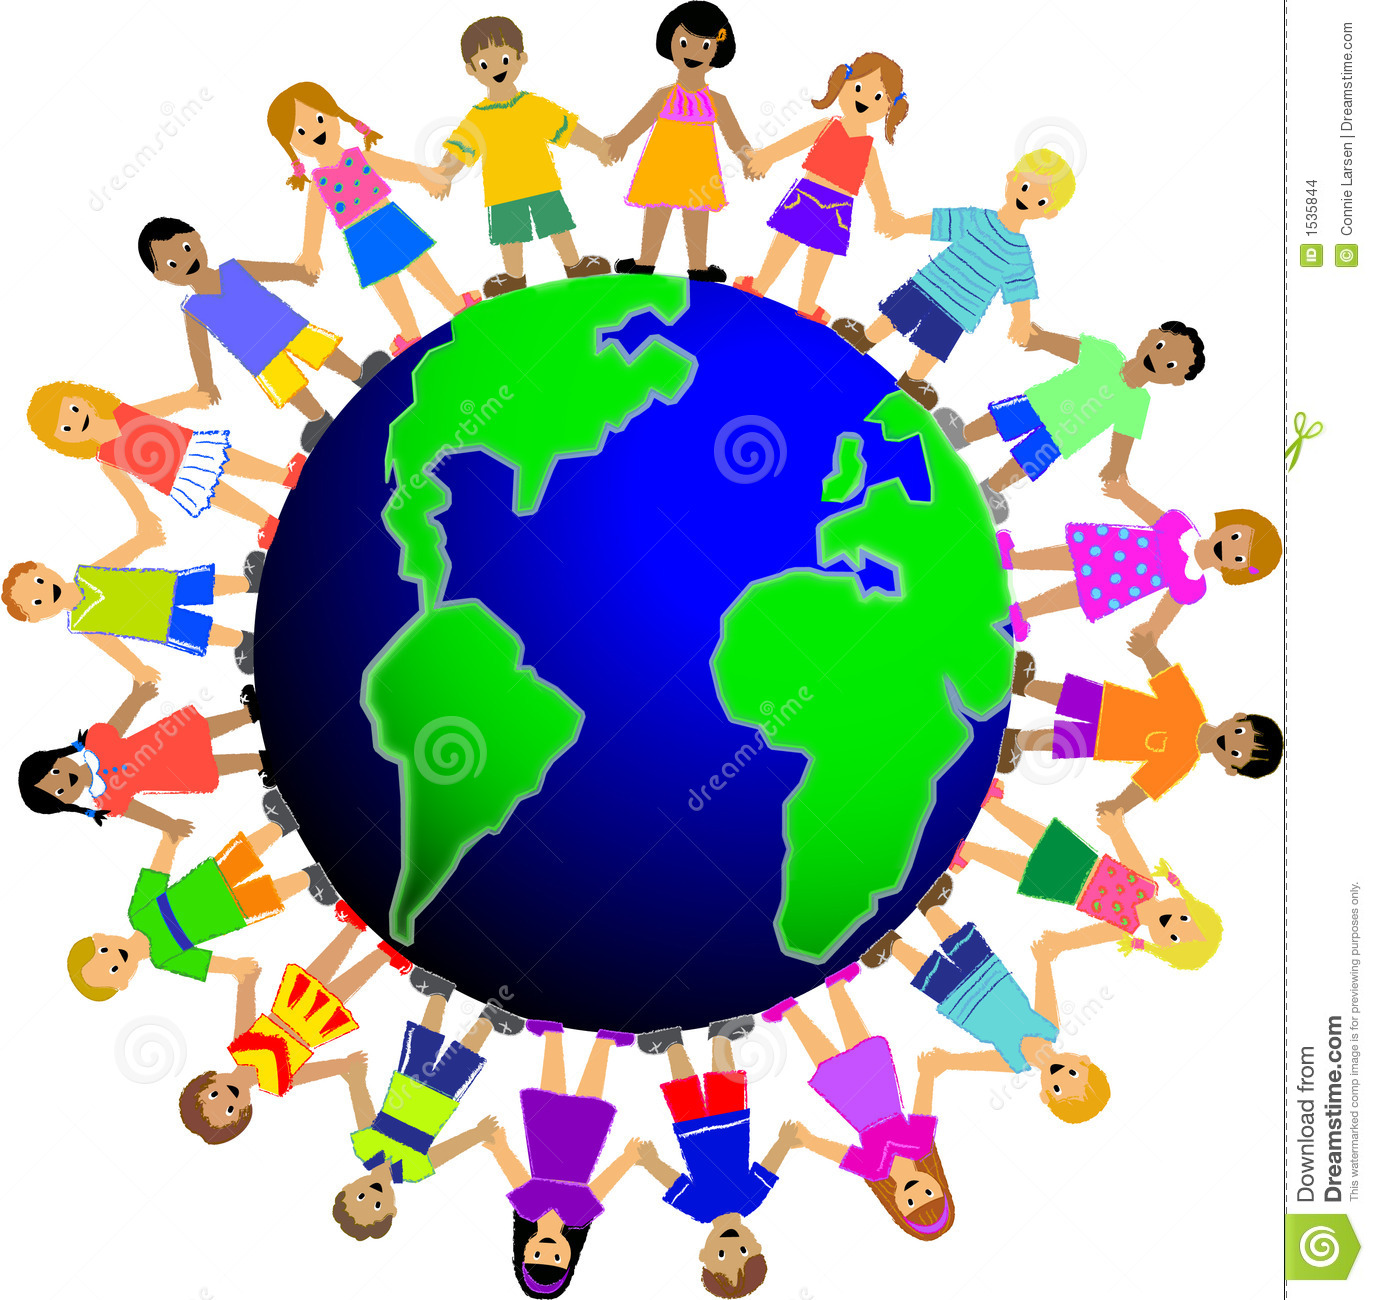 Illustration of multi cultural children holding hands surrounding the